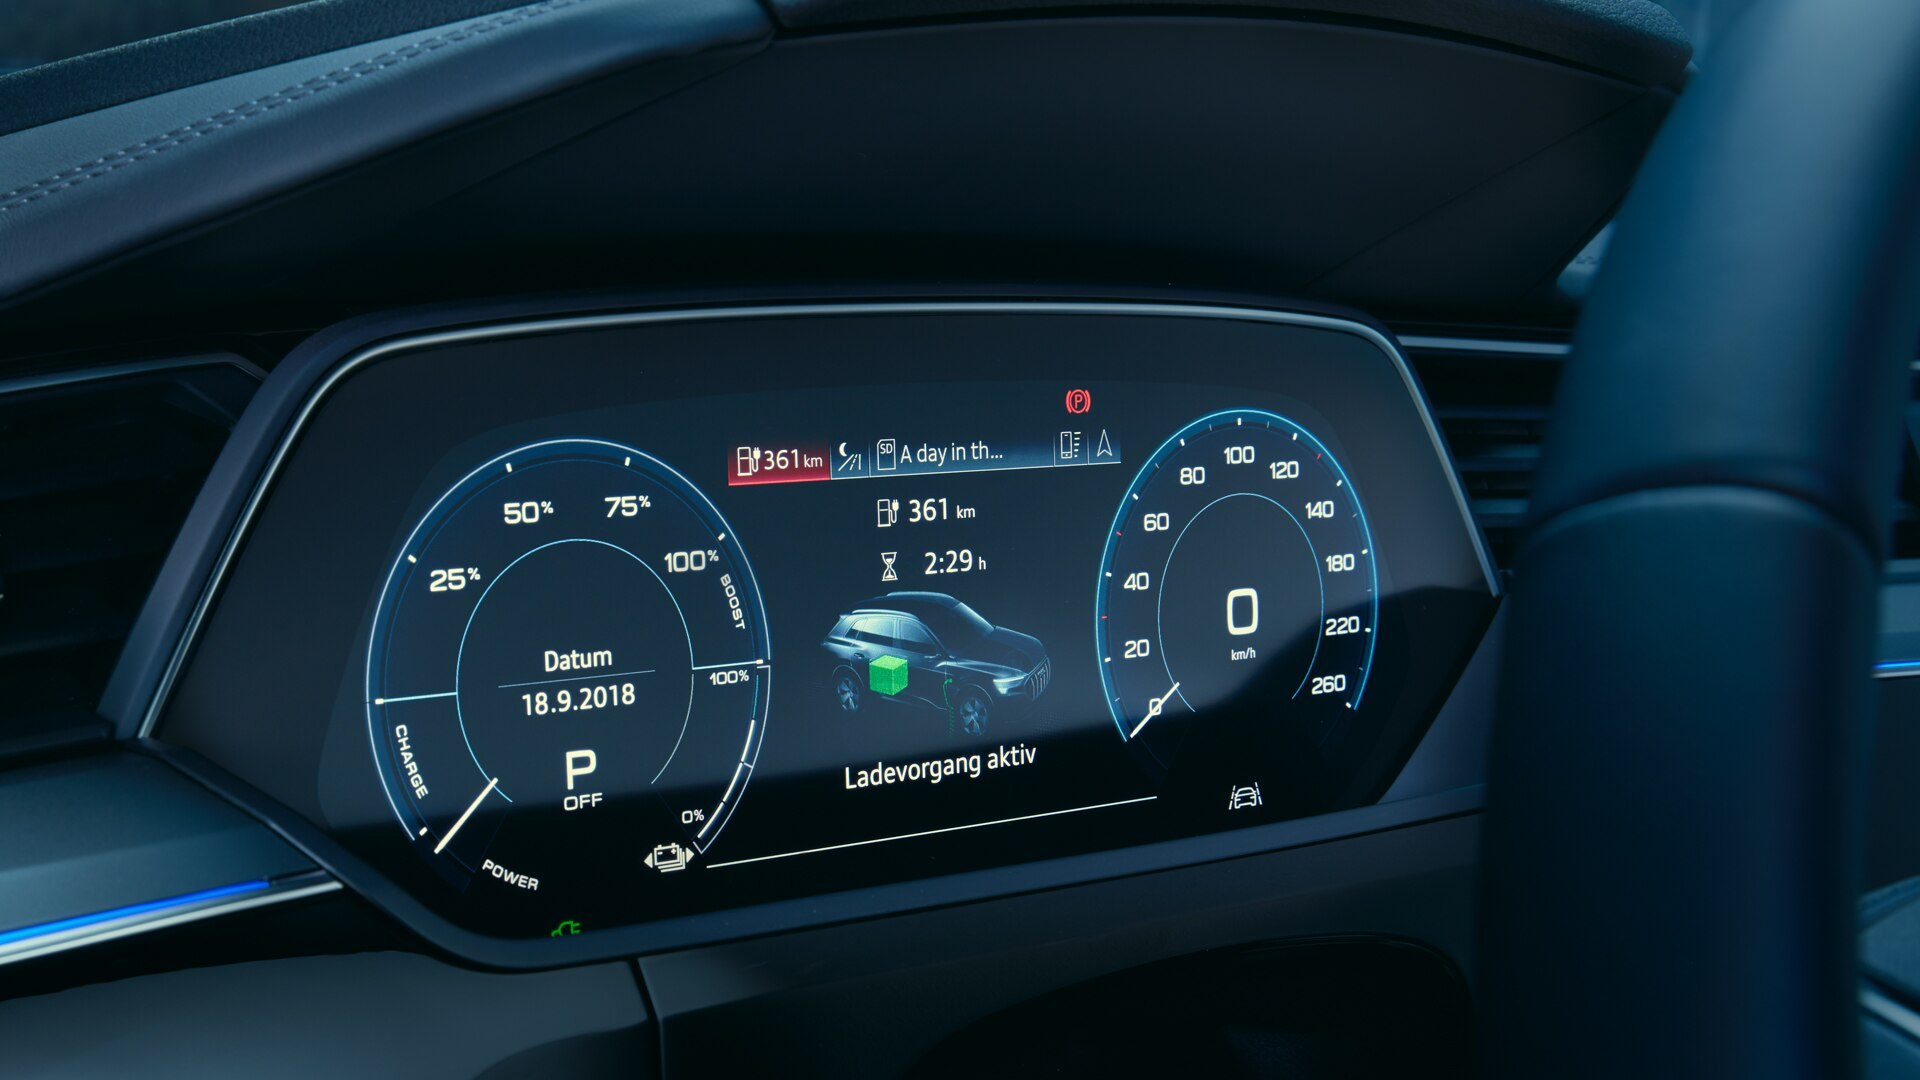 Audi e-tron display